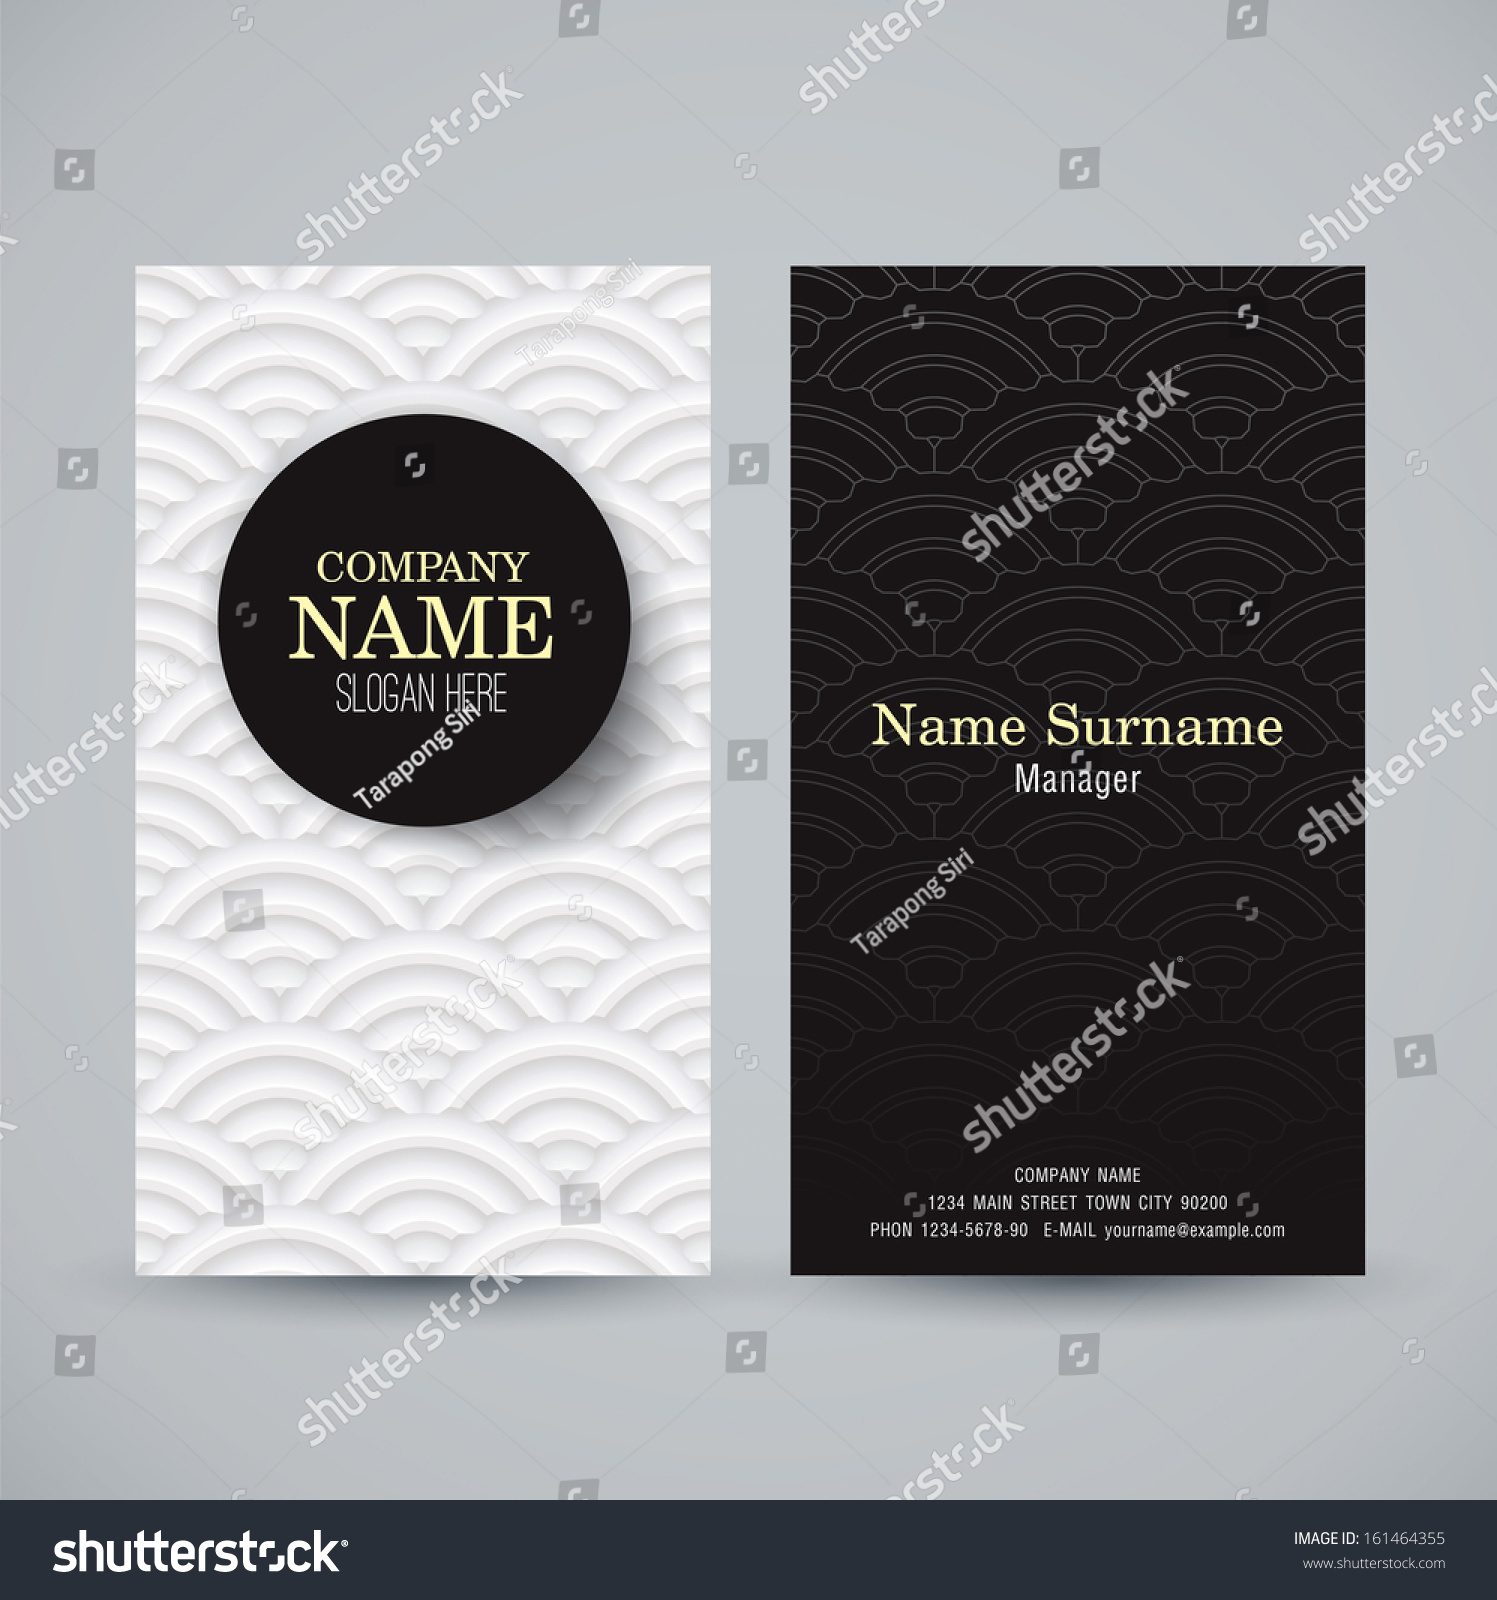 Name Card Design Template. Business Card Vector ...